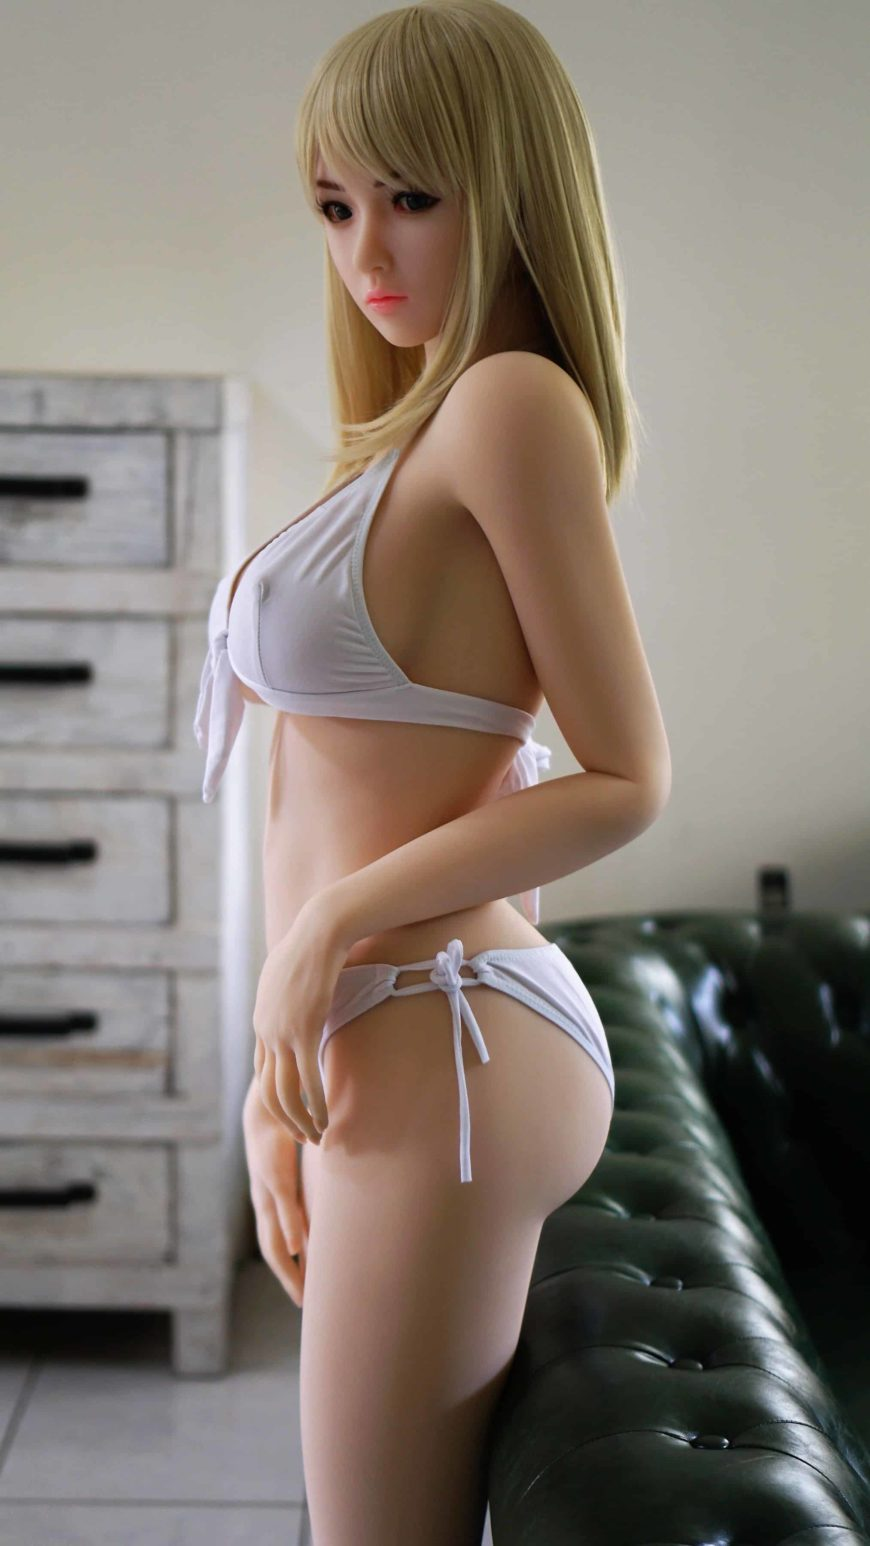 Sex-Dolls-Cat-from-Dirty-Knights-Sex-Dolls-Posing-Nude-and-In-White-Bikini-1 (2)